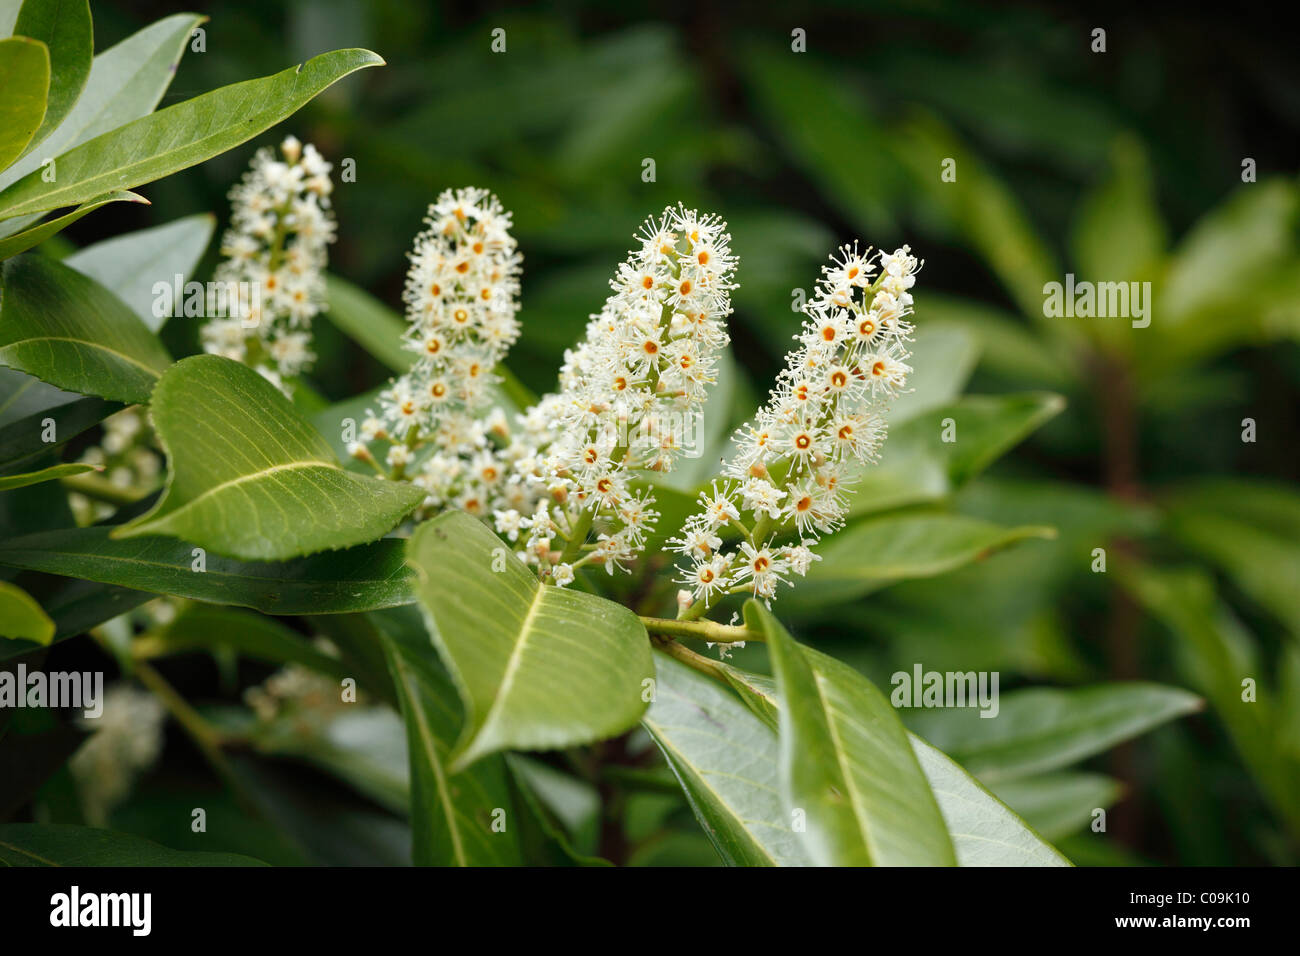 Cherry laurel (Prunus laurocerasus) blossoms, Ireland, Europe - Stock Image